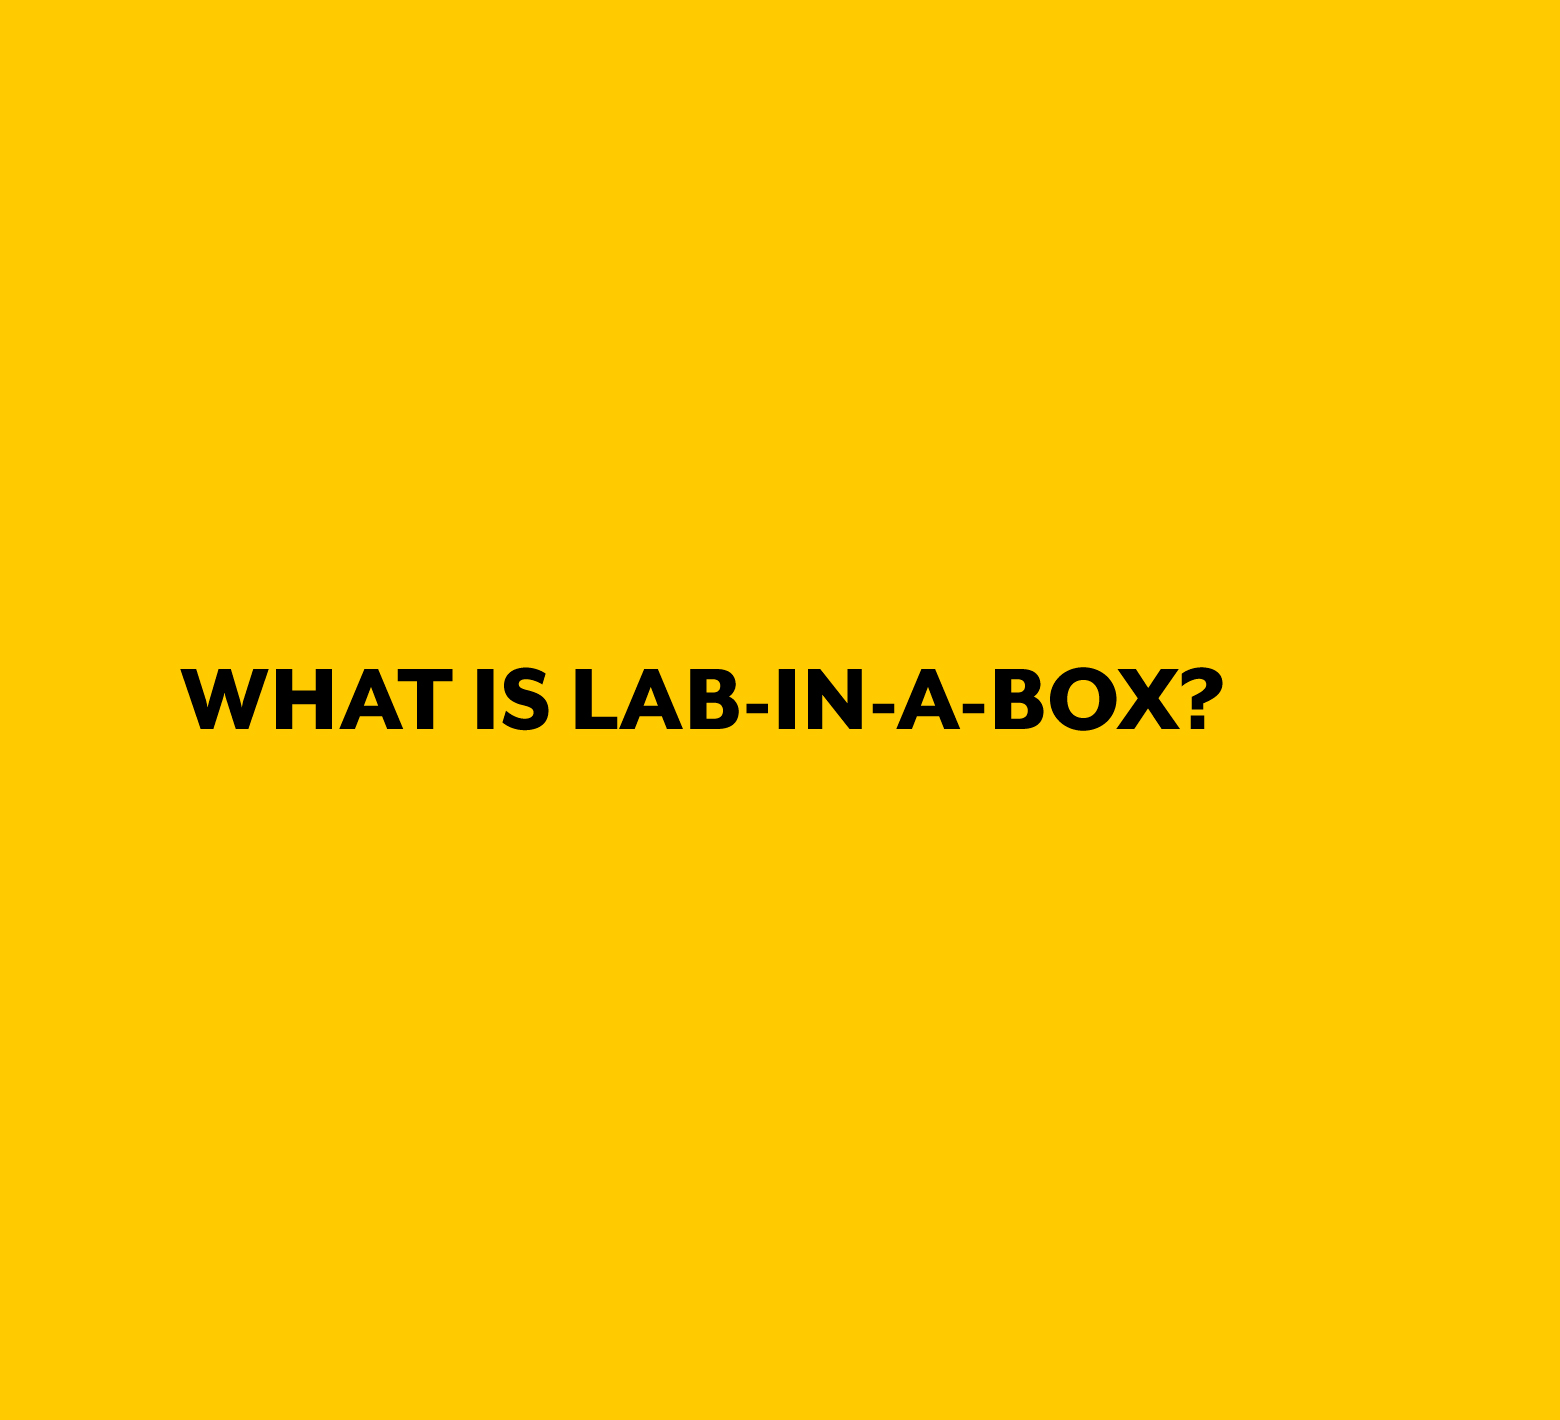 - Lab in a Box (LIAB) is a snapshot of our current social labs practice.  Our intention is to codify, capture and share our practice openly as it is developing to support the maturing field of strategic approaches to complex challenges.  As such, the information here grows and changes as we continue to discover more effective approaches to the work.We have organized the information so you can access it by phase of delivery (Preconditions, Delivery and Intercycle Period), by 'stack' which is a way of thinking about the main work areas in a lab (innovation, capability, information, and governance) and by tools (checklists, protocols, assessments, handouts, samples, and models).